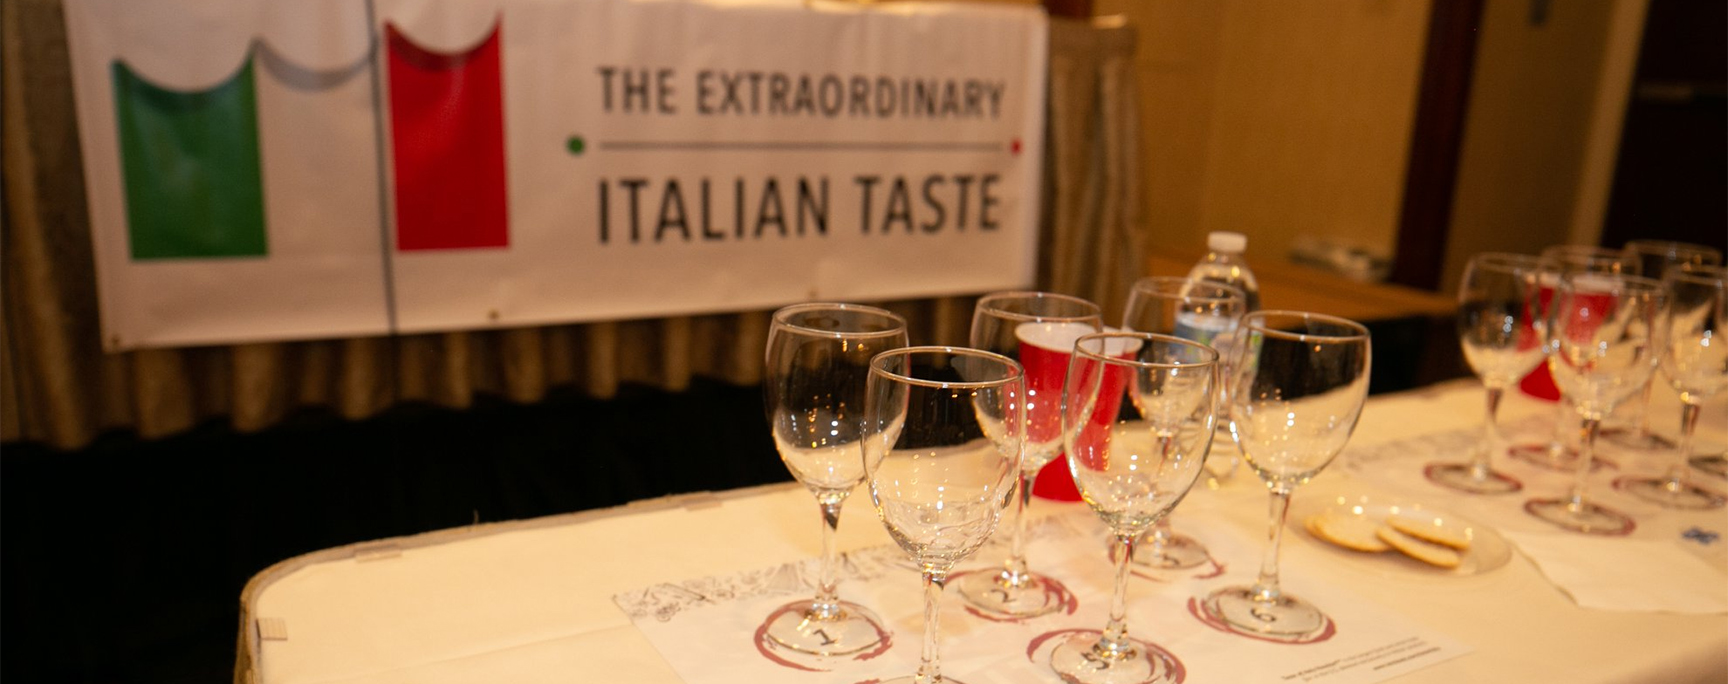 Rossini Cucina Italiana Ridgeland Menu Save The Date Taste Of Italy Houston Feb 24 25 Iacctexas